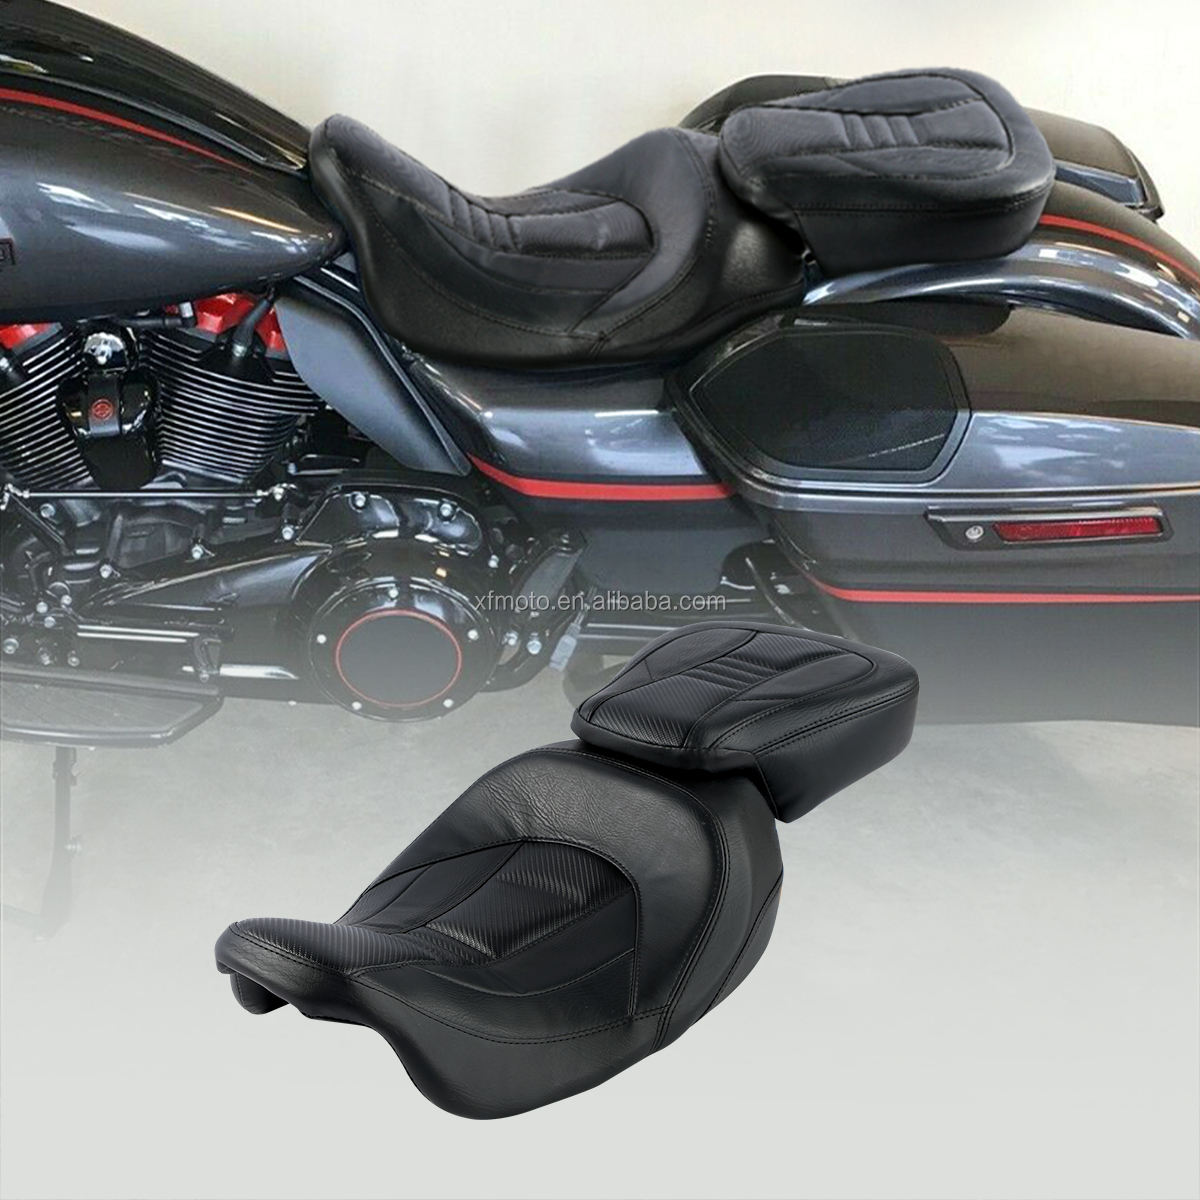 TCMT Conducente Passeggero Sedile del water Set Set Fit Per Harley Touring CVO Street Glide 2009-2020 XF2906C231